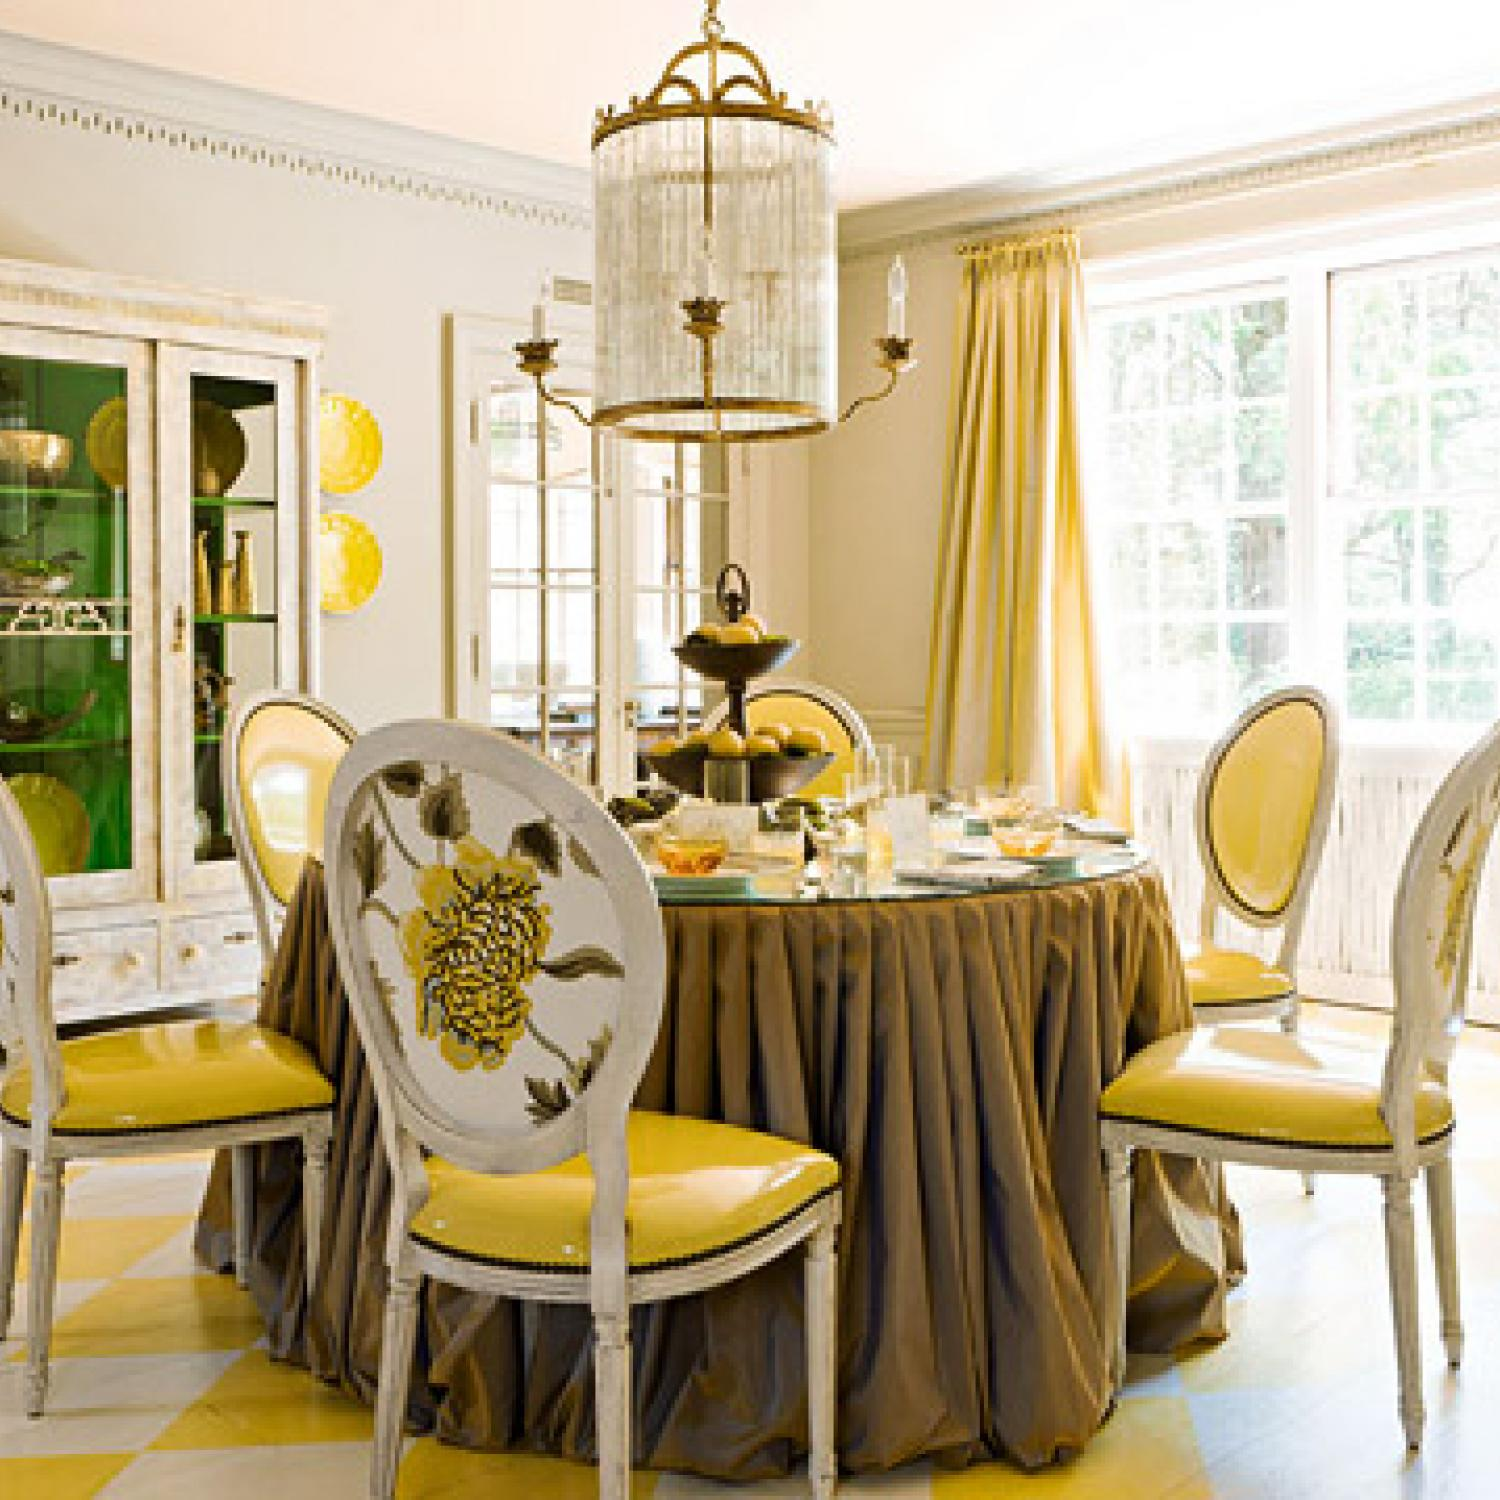 Traditional Decorating in Sunny Yellow | Traditional Home